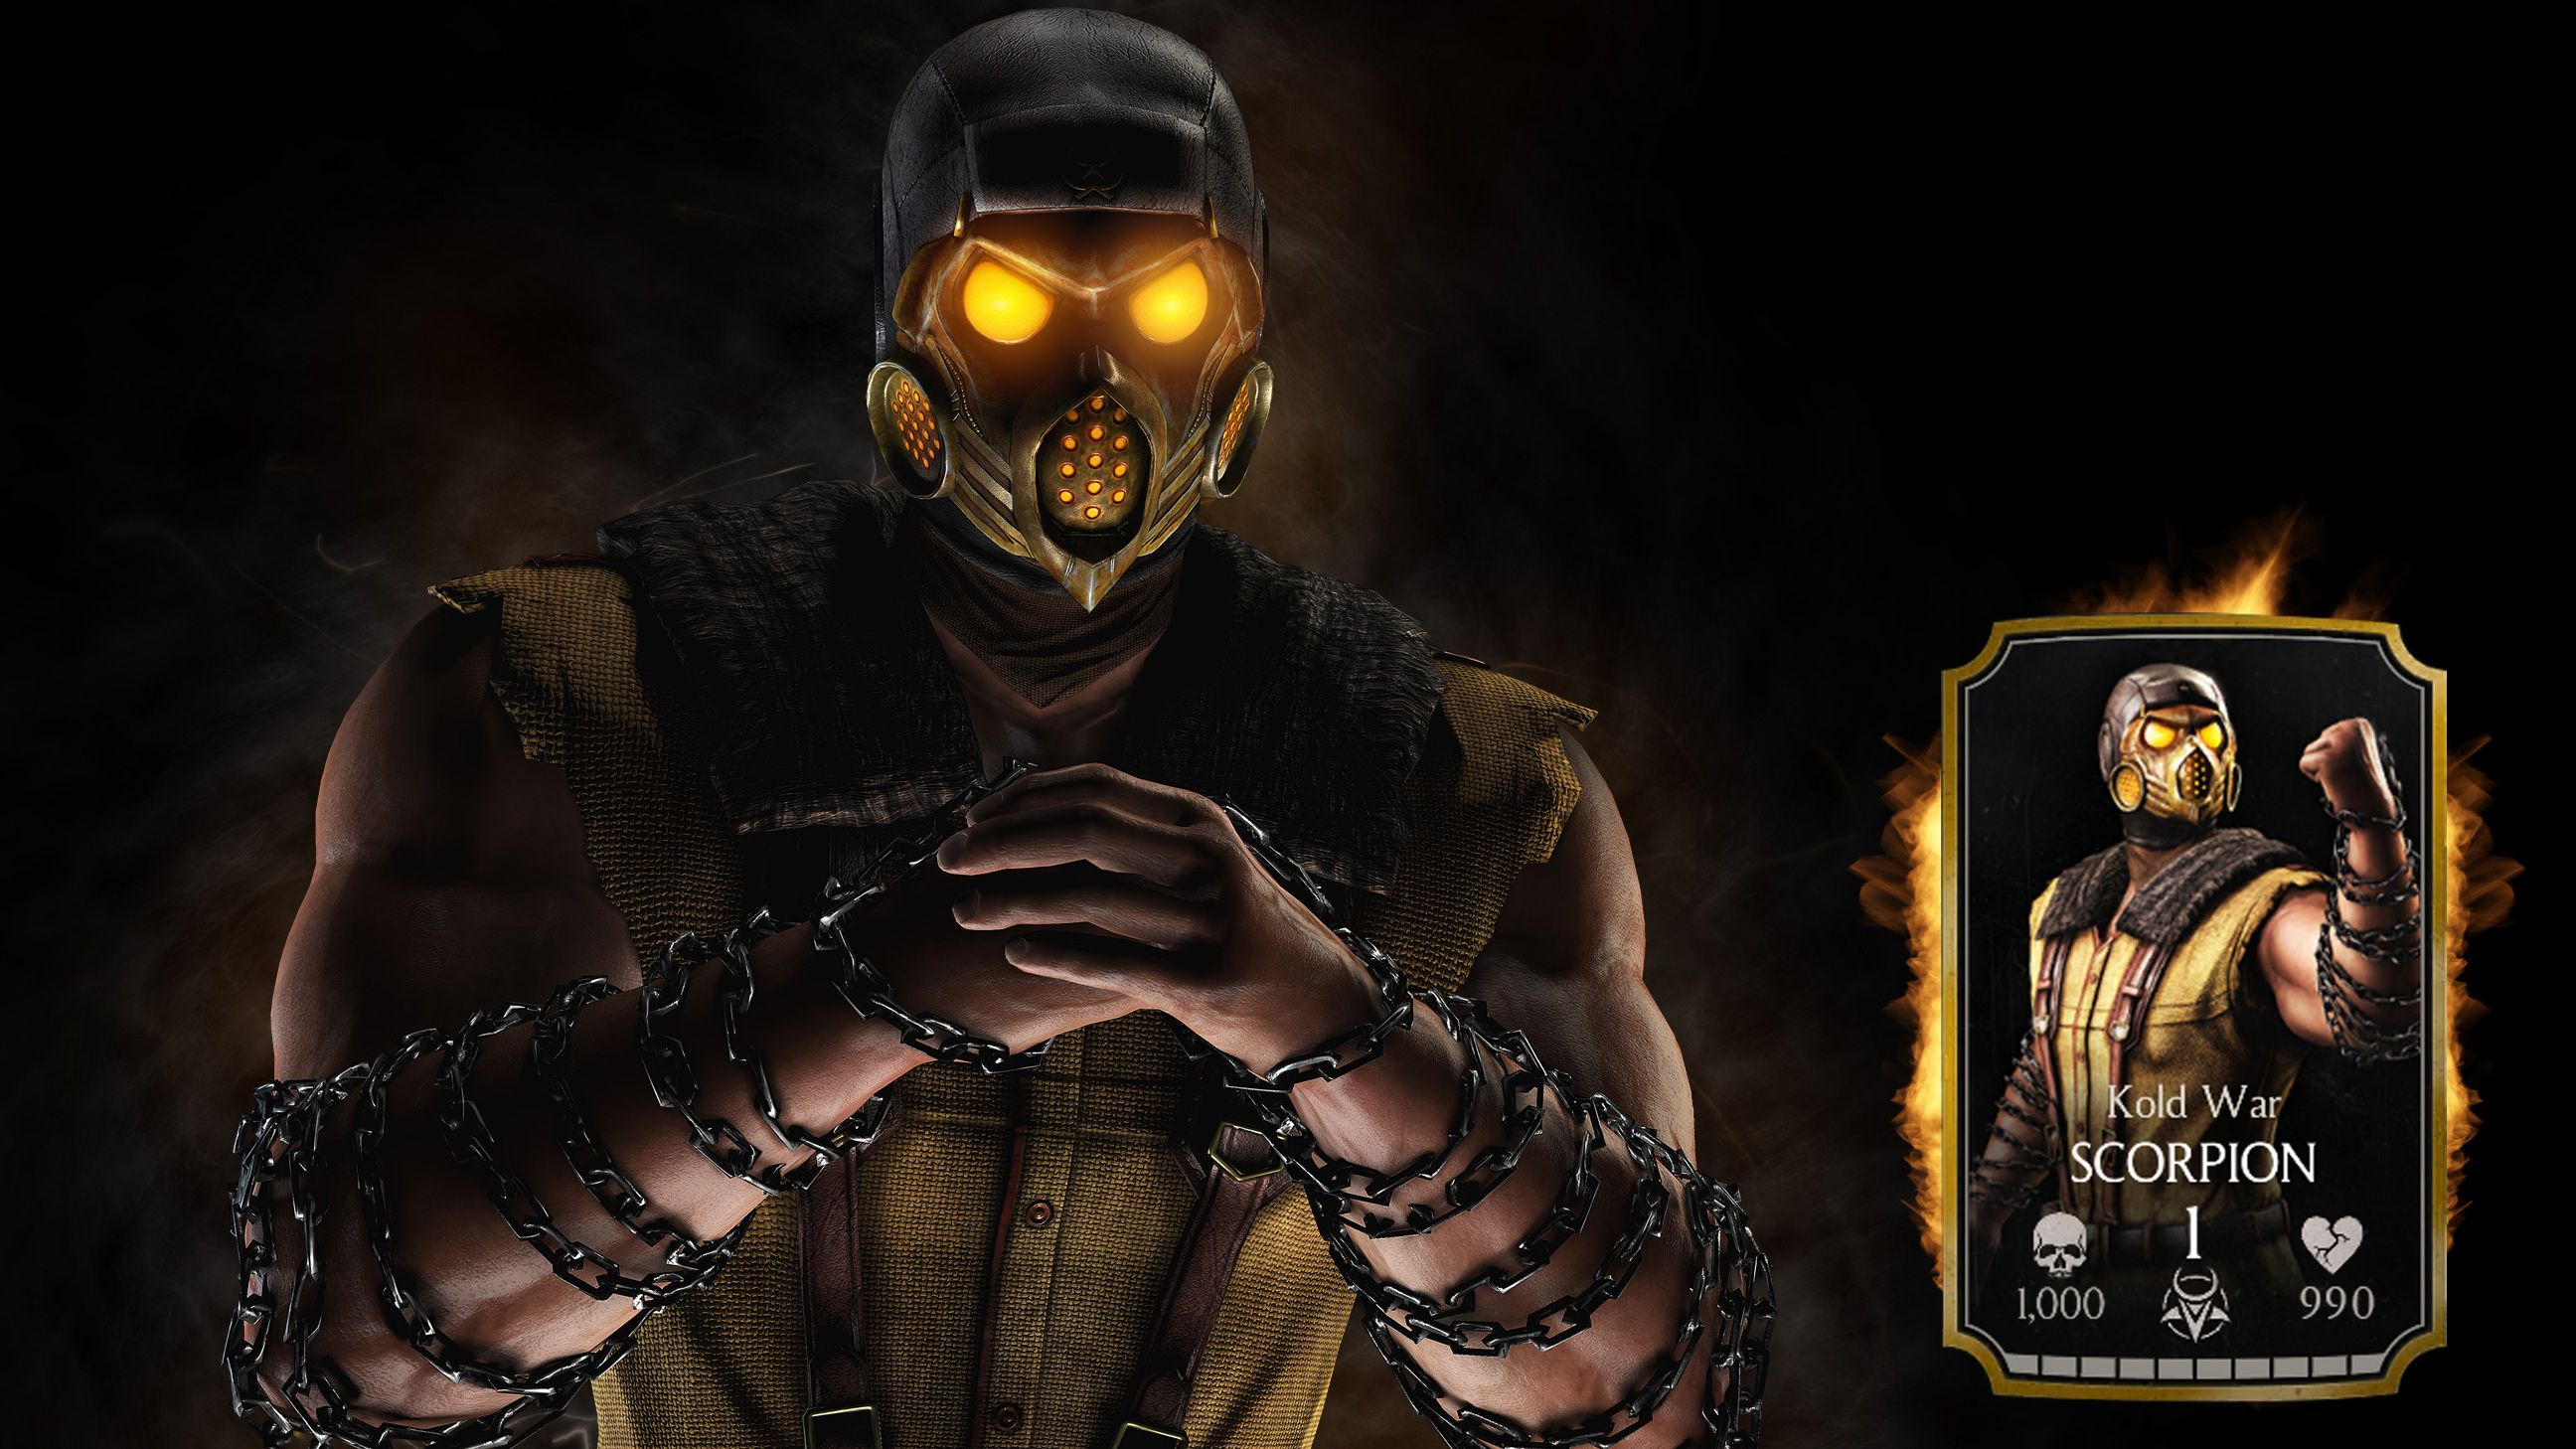 Mortal Kombat X Scorpion Wallpapers Top Free Mortal Kombat X